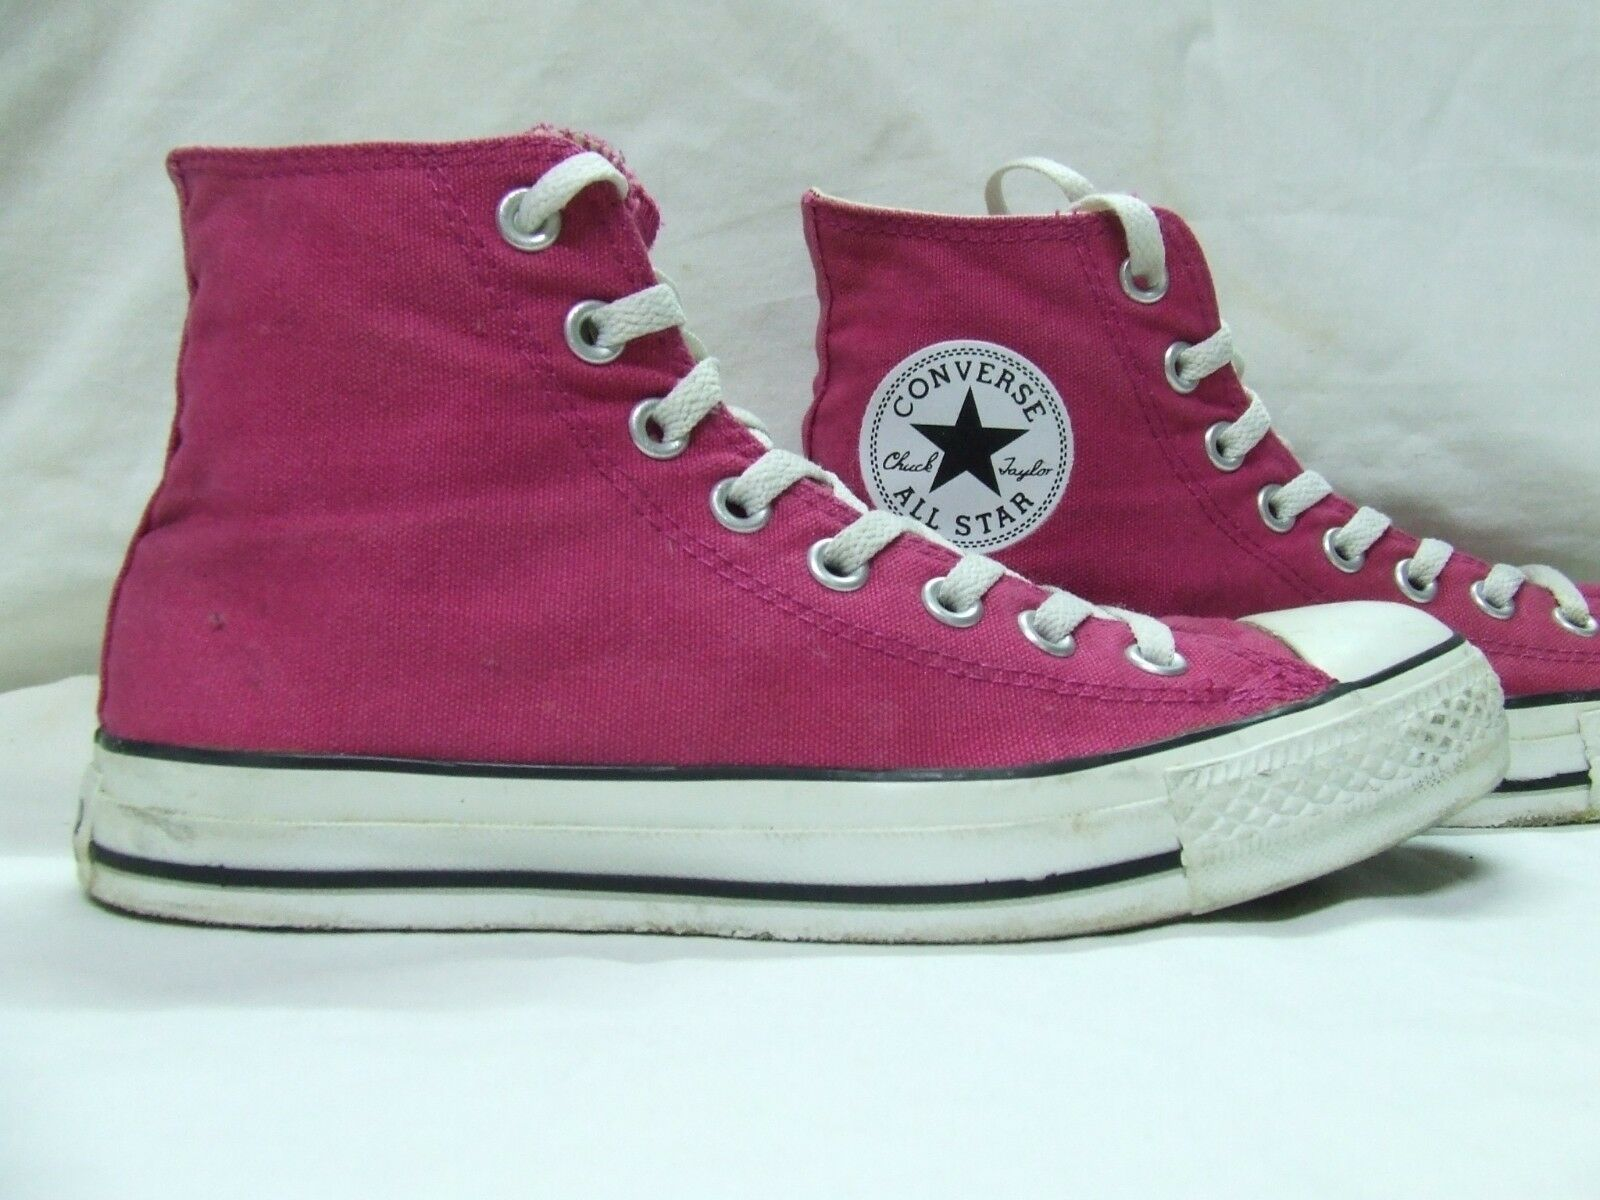 SHOES MAN WOMAN VINTAGE CONVERSE ALL STAR size 6,5 - 39,5 (066)